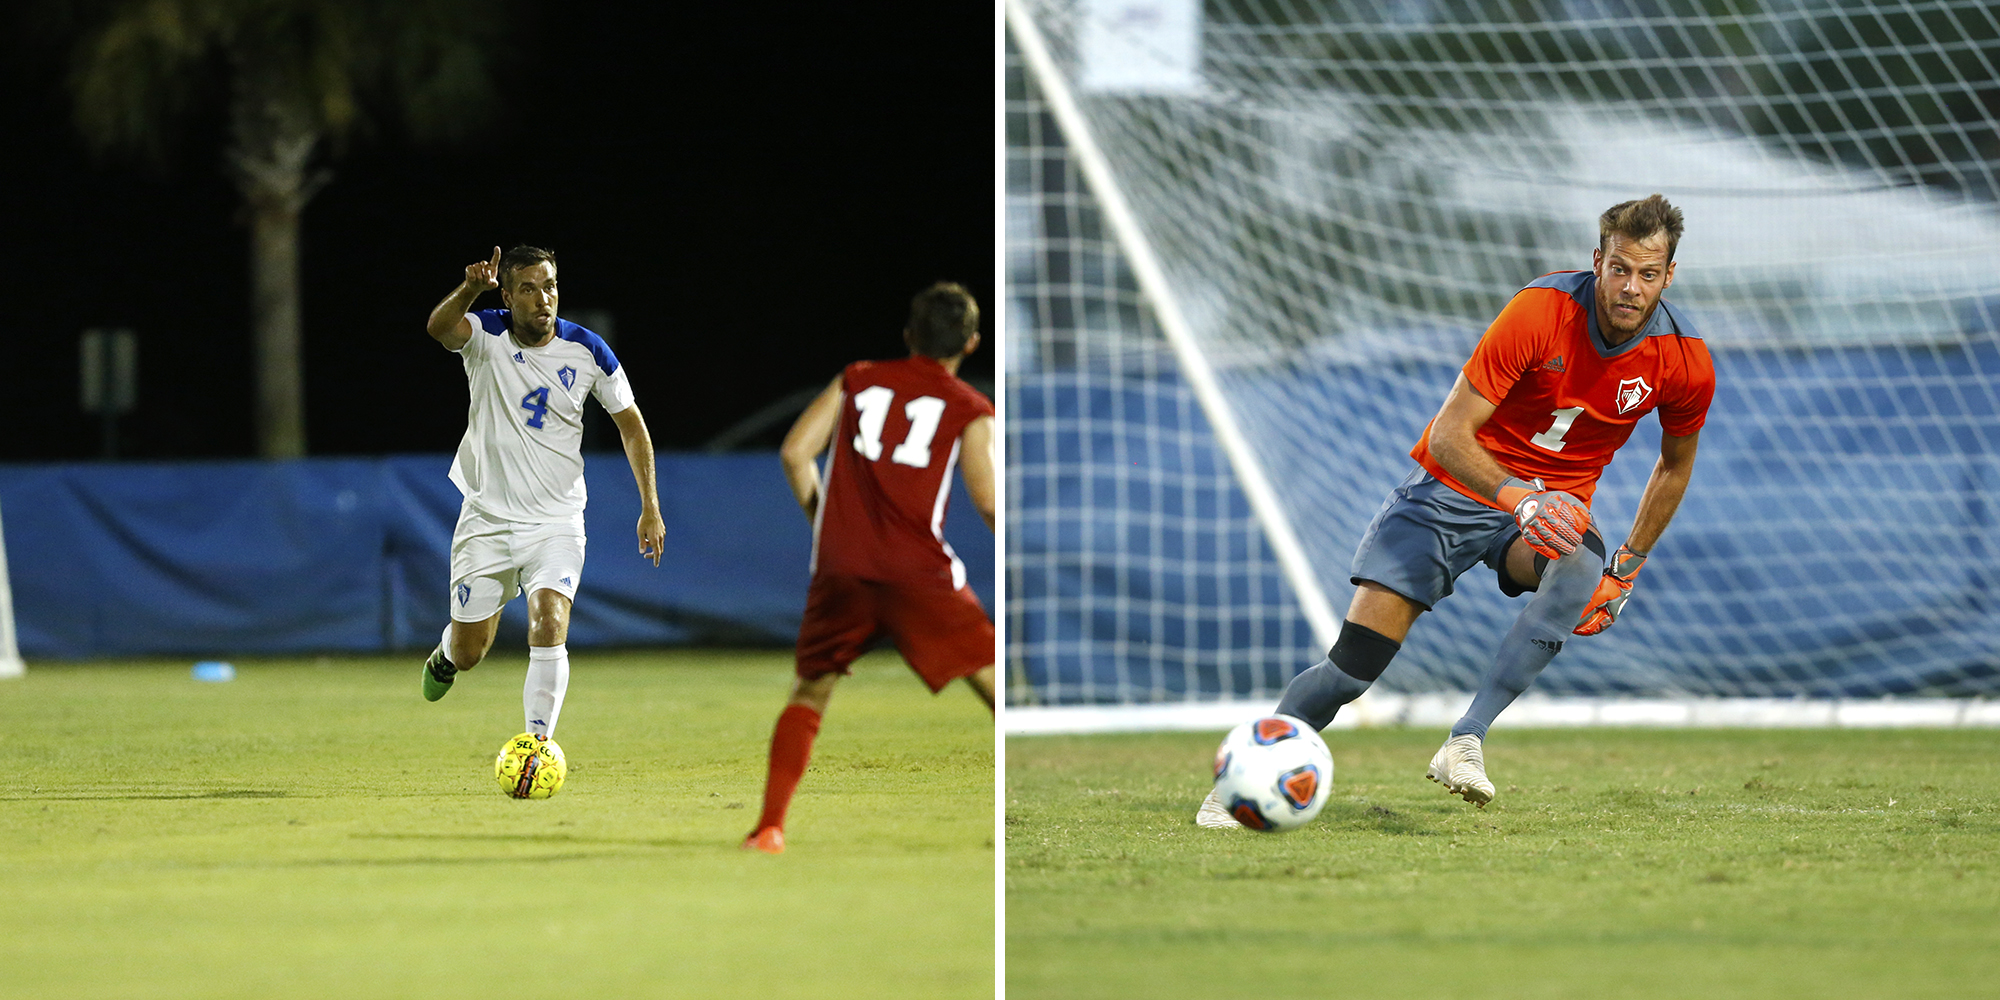 Tasky Headlines Men's Soccer All-SSC selections